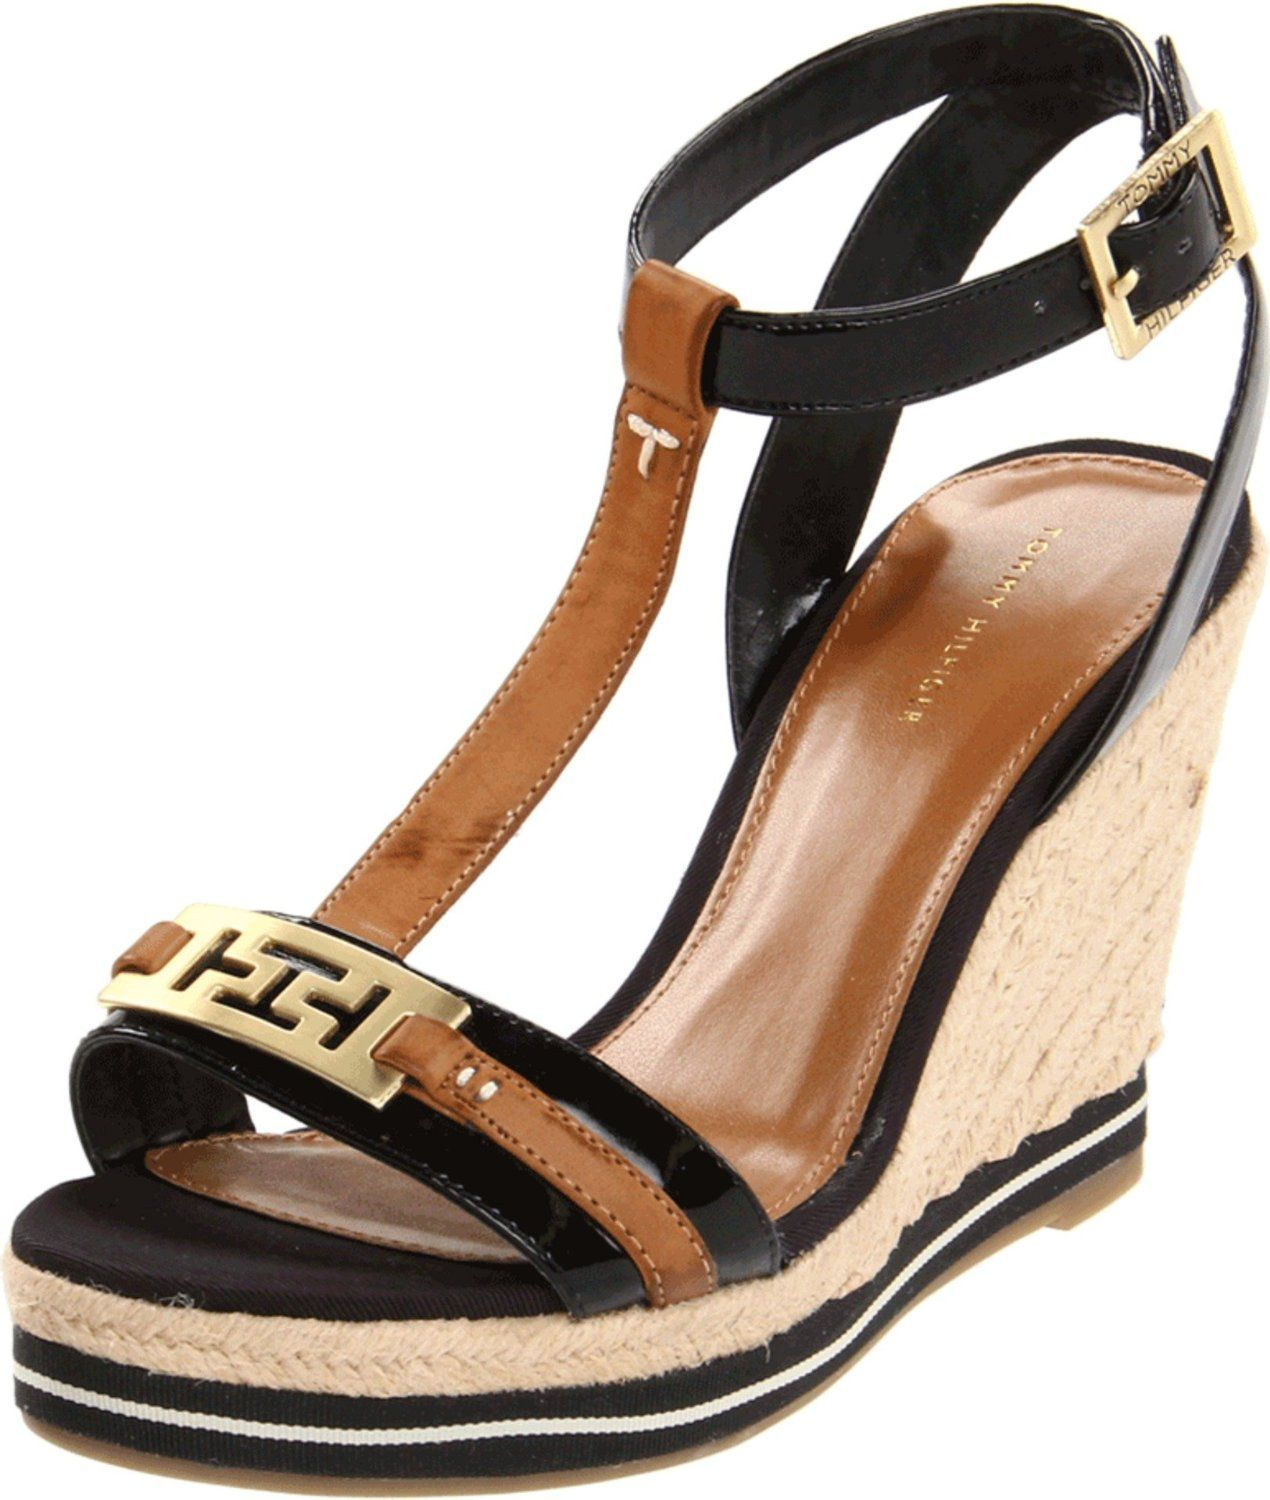 tommy hilfiger women 39 s daisie wedge espadrille if i. Black Bedroom Furniture Sets. Home Design Ideas